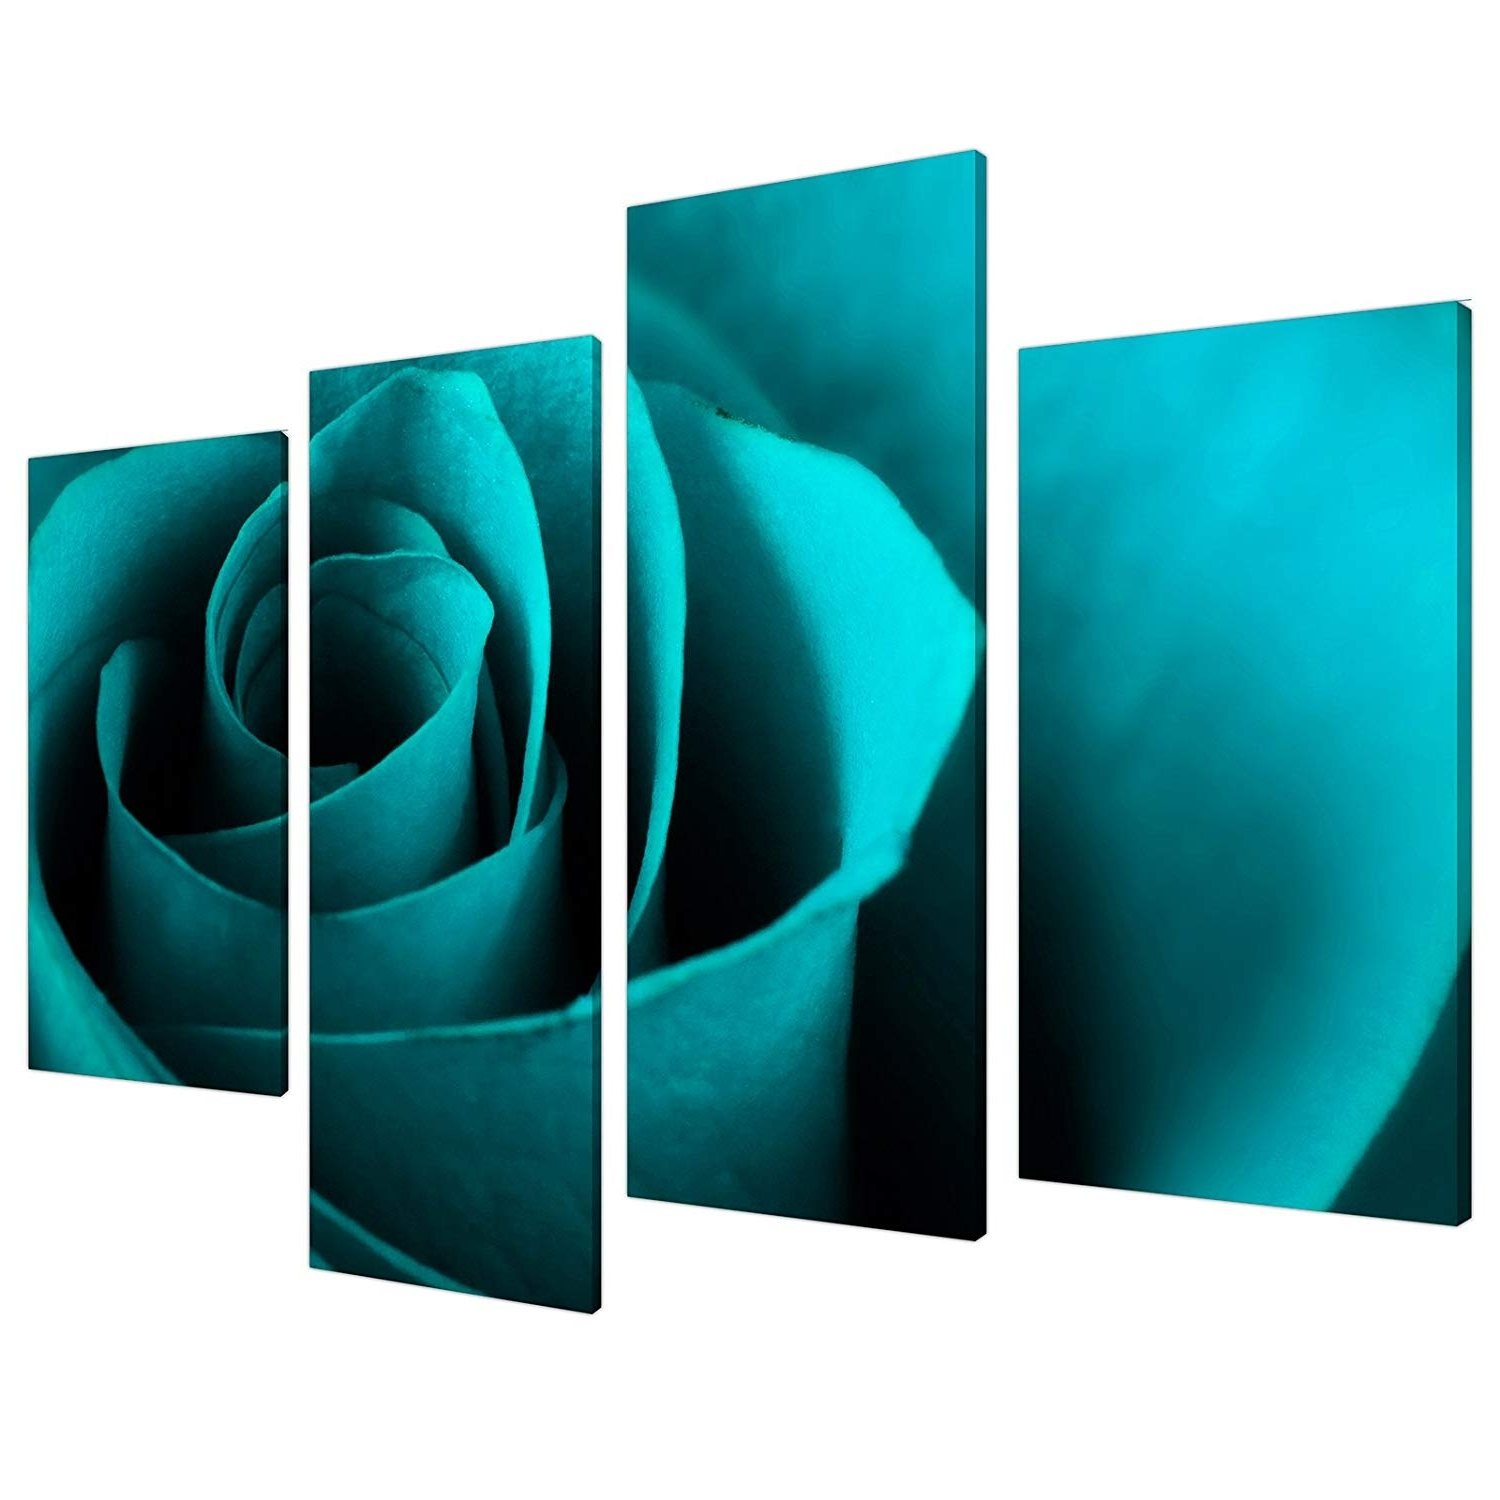 Large Teal Turquoise Floral Canvas Wall Art Pictures Xl Prints 4109 With Most Popular Turquoise Wall Art (View 7 of 20)